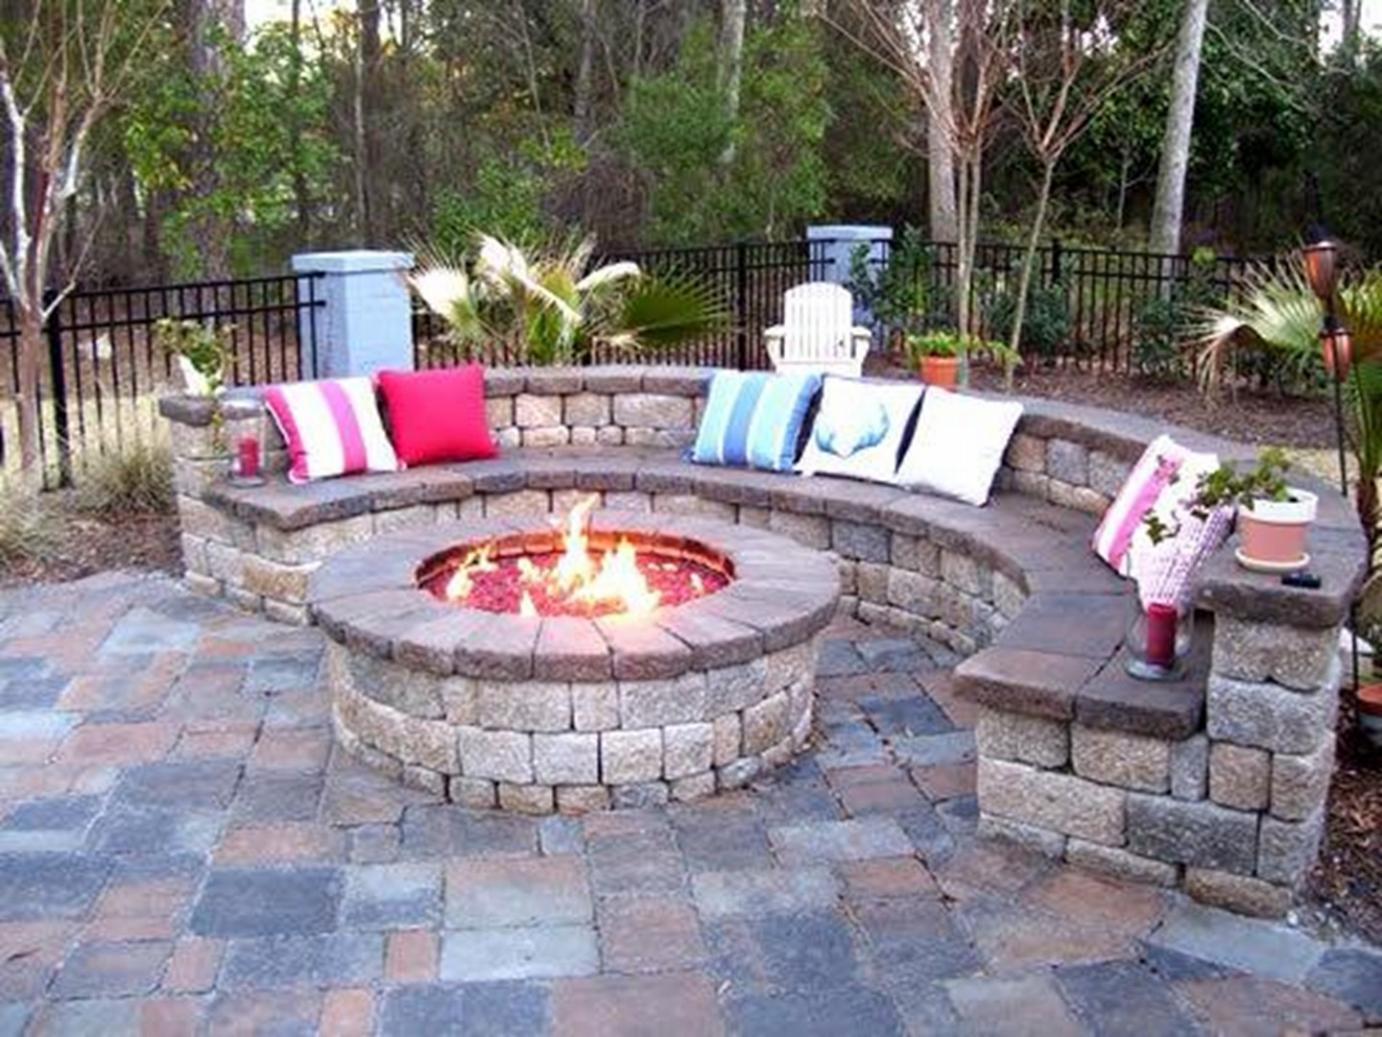 Backyard design ideas with fire pit - large and beautiful photos ...